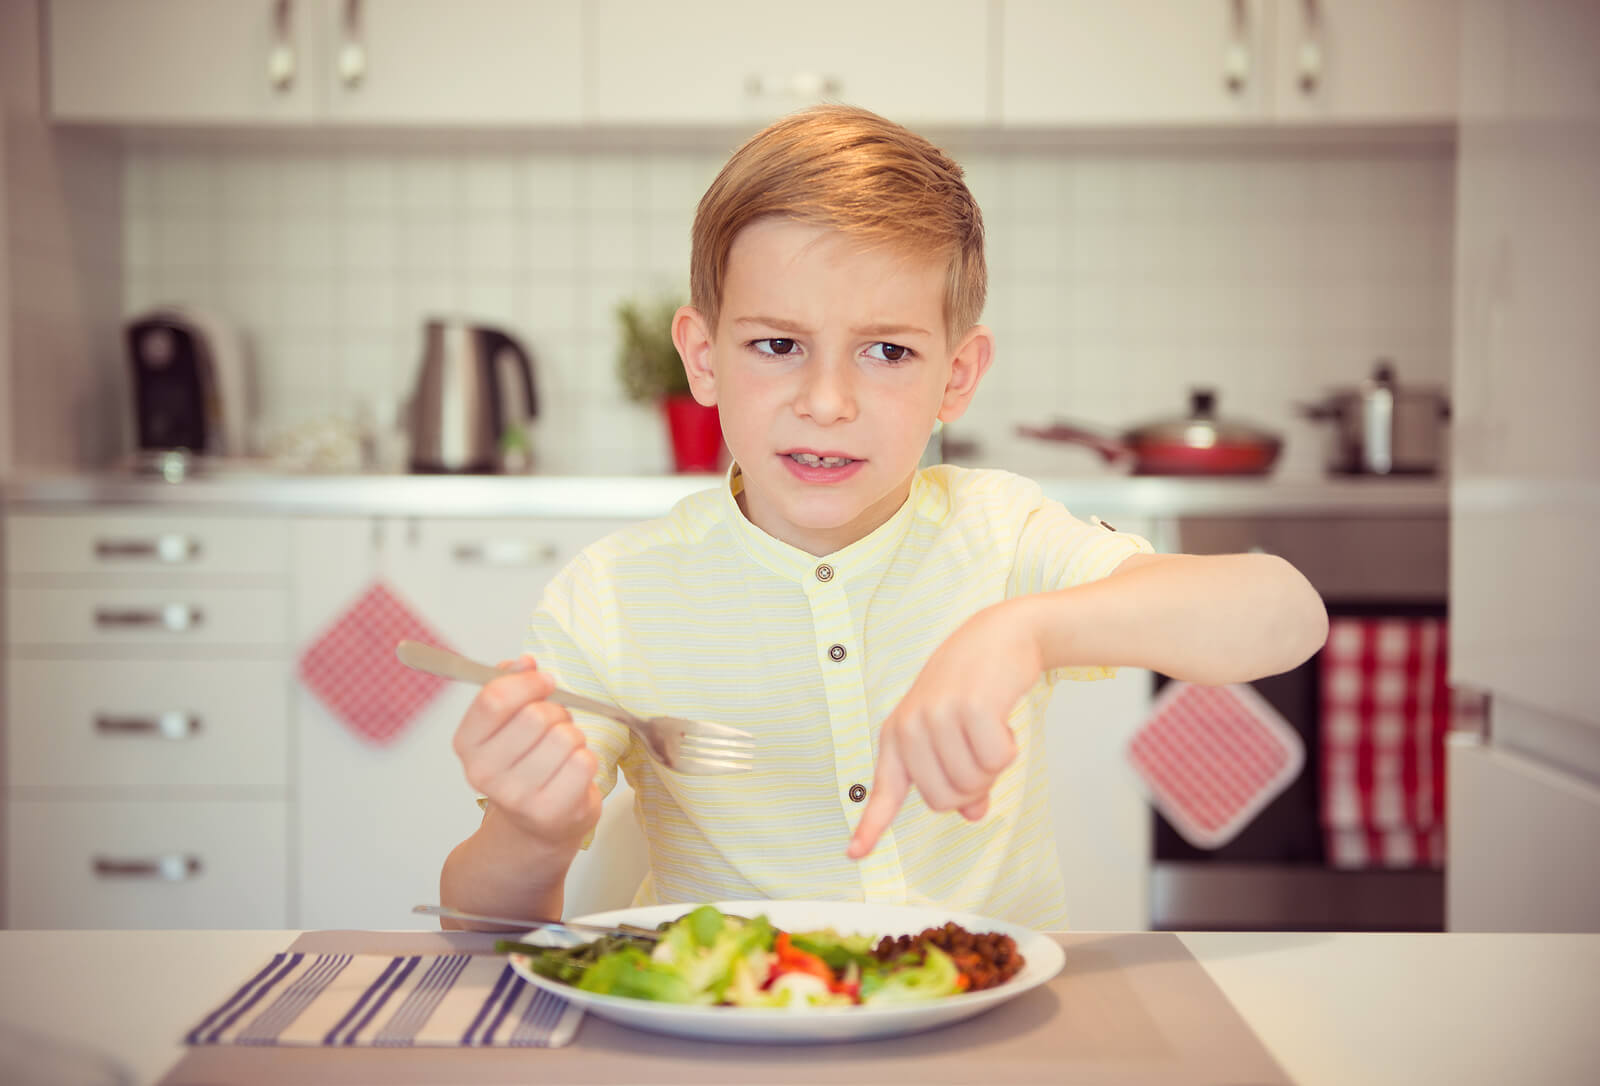 bigstock Angry Hungry Boy Child Complai 148104515